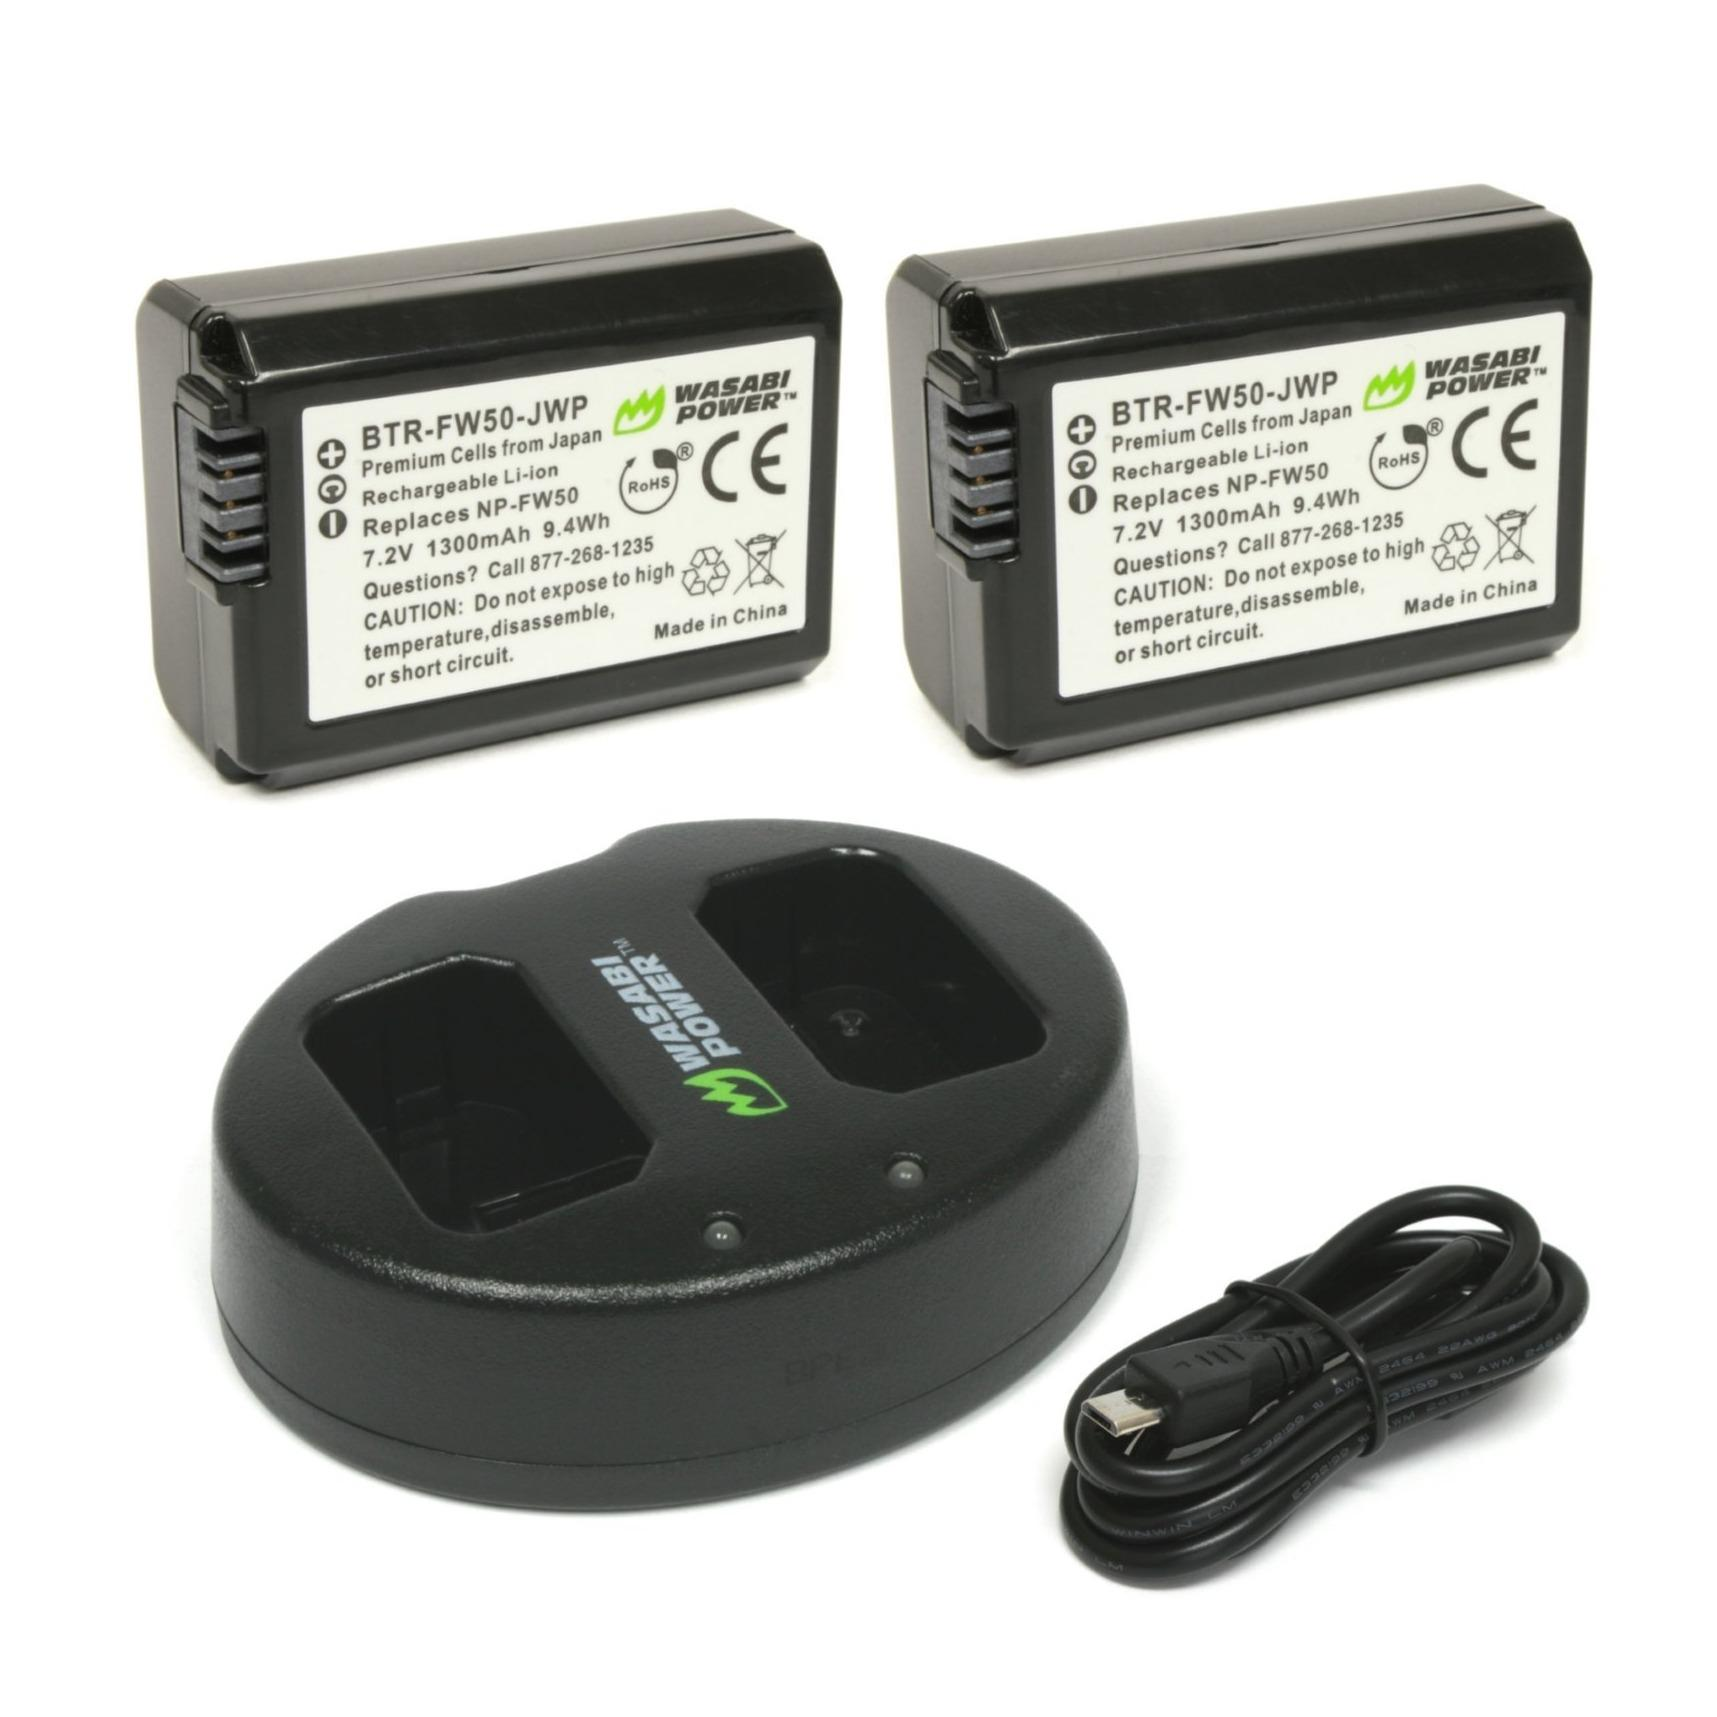 Camera Battery For Sale Digital Prices Brands Vw Rebel Wiring Harness Wasabi Power Sony Np Fw50 2 Pack And Dual Charger Npfw50